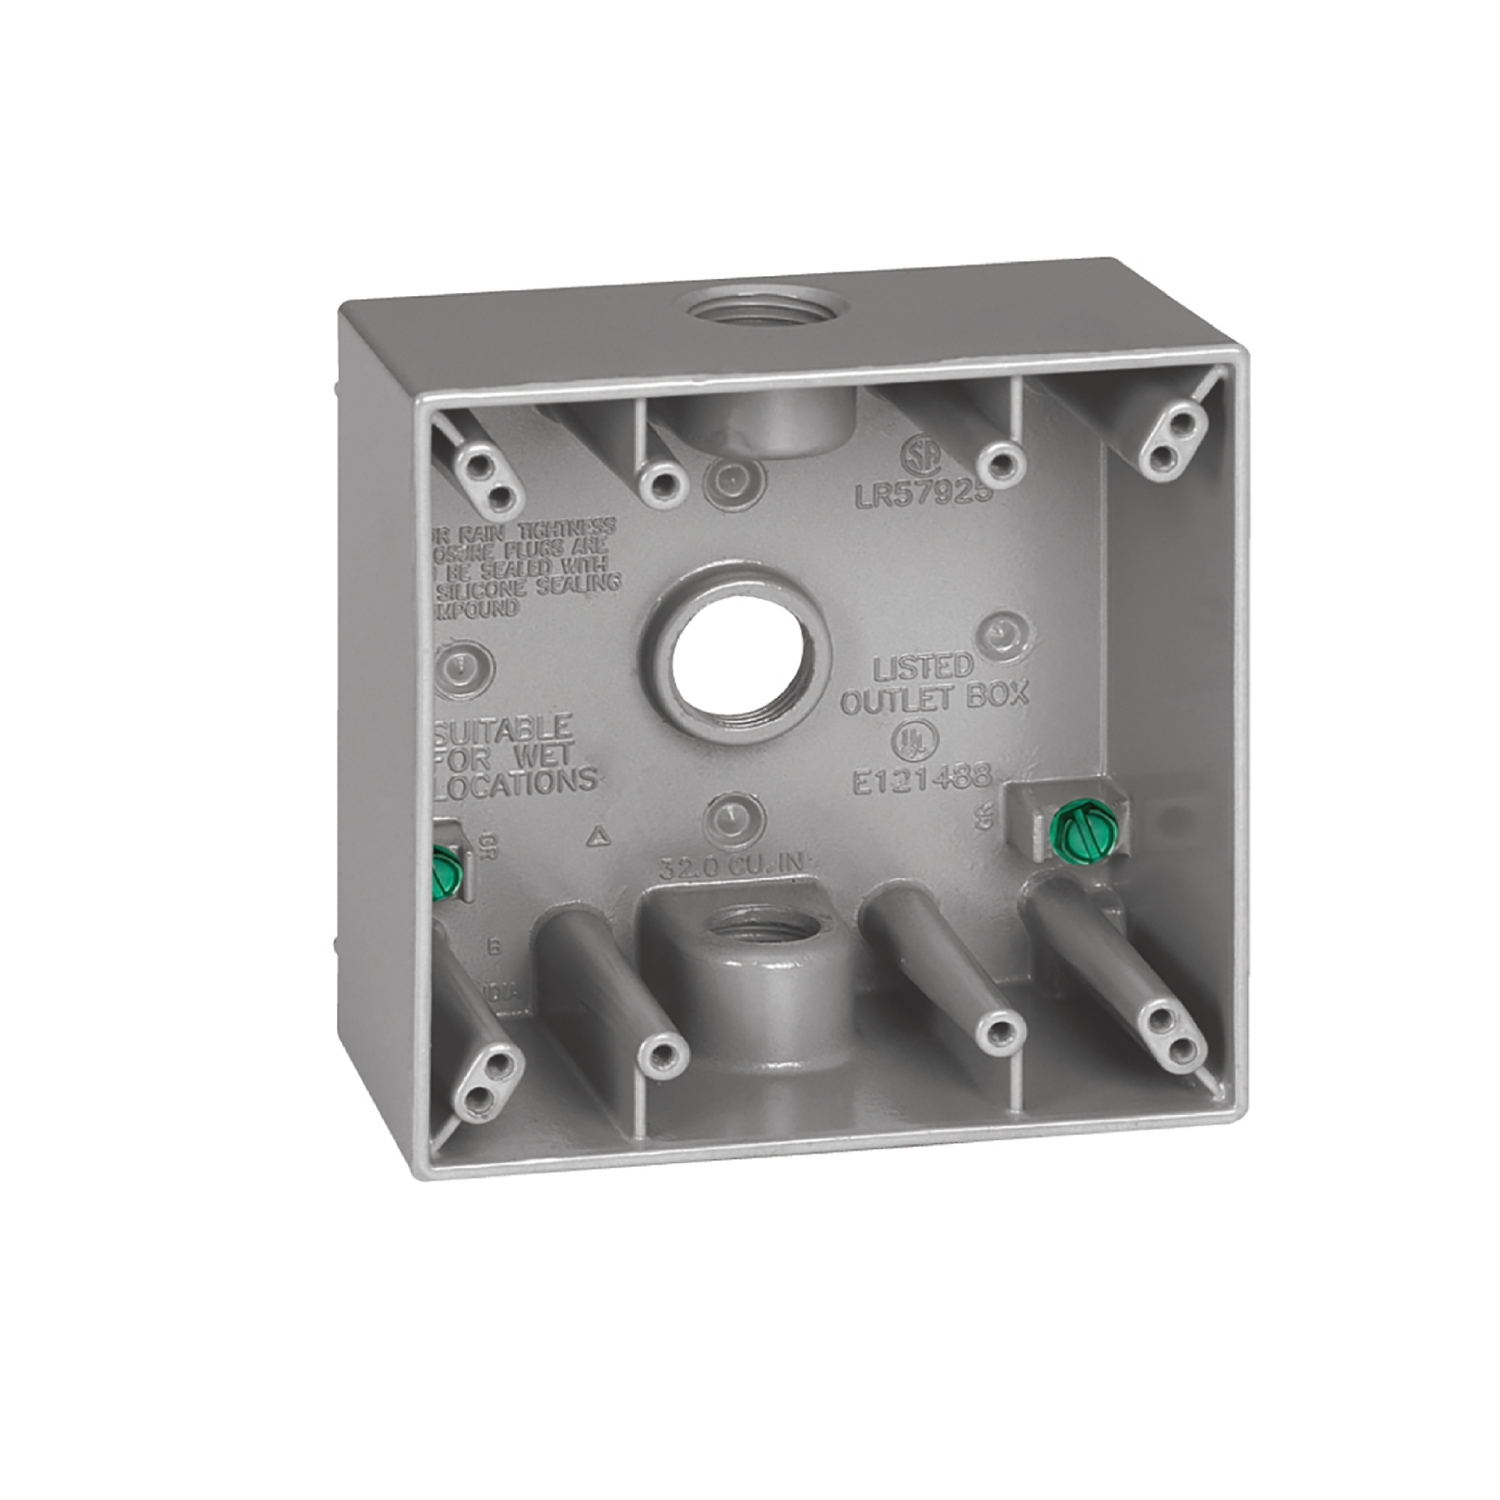 Sigma  4-1/2 in. 2 Gang  Aluminum  Gray  Square  Outlet Box